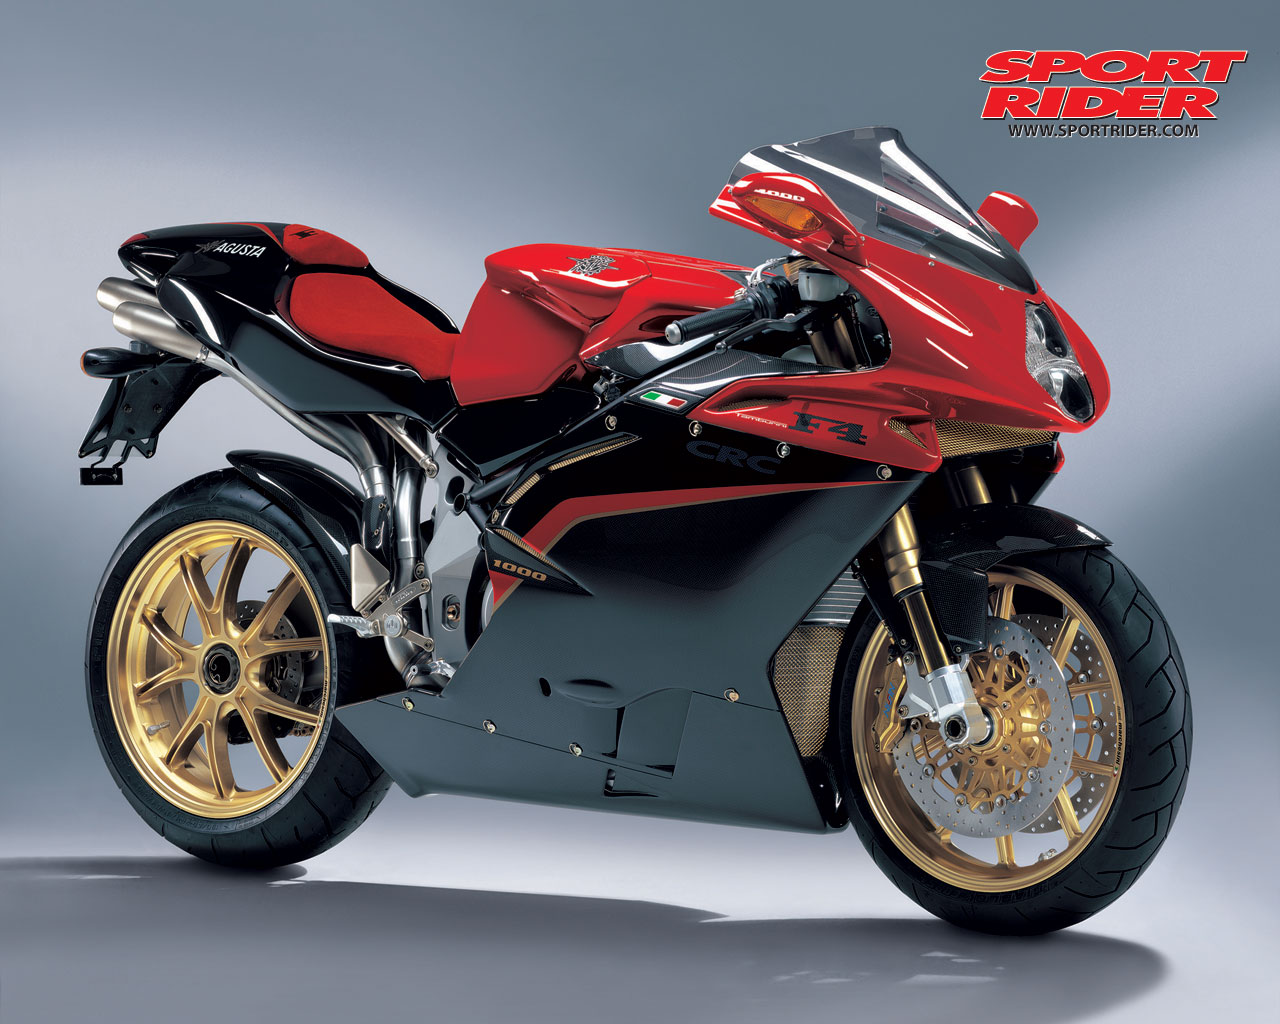 All sports cars sports bikes hot and carzy bikes hd - Best wallpapers of cars and bikes ...